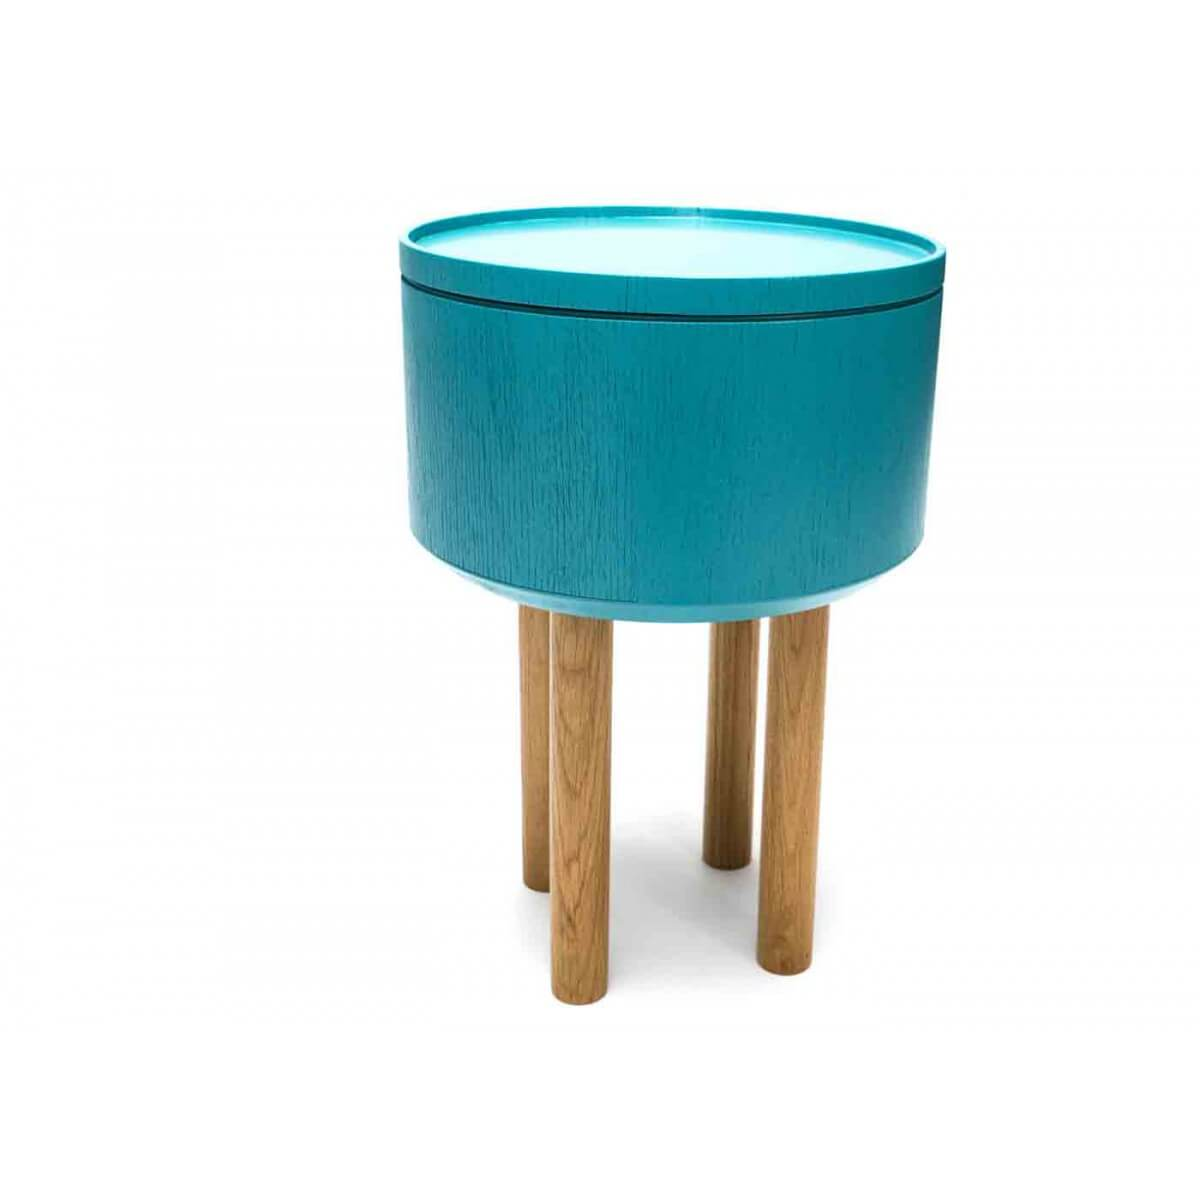 table basse design scandinave bleu glacier hat 3 par bellila. Black Bedroom Furniture Sets. Home Design Ideas